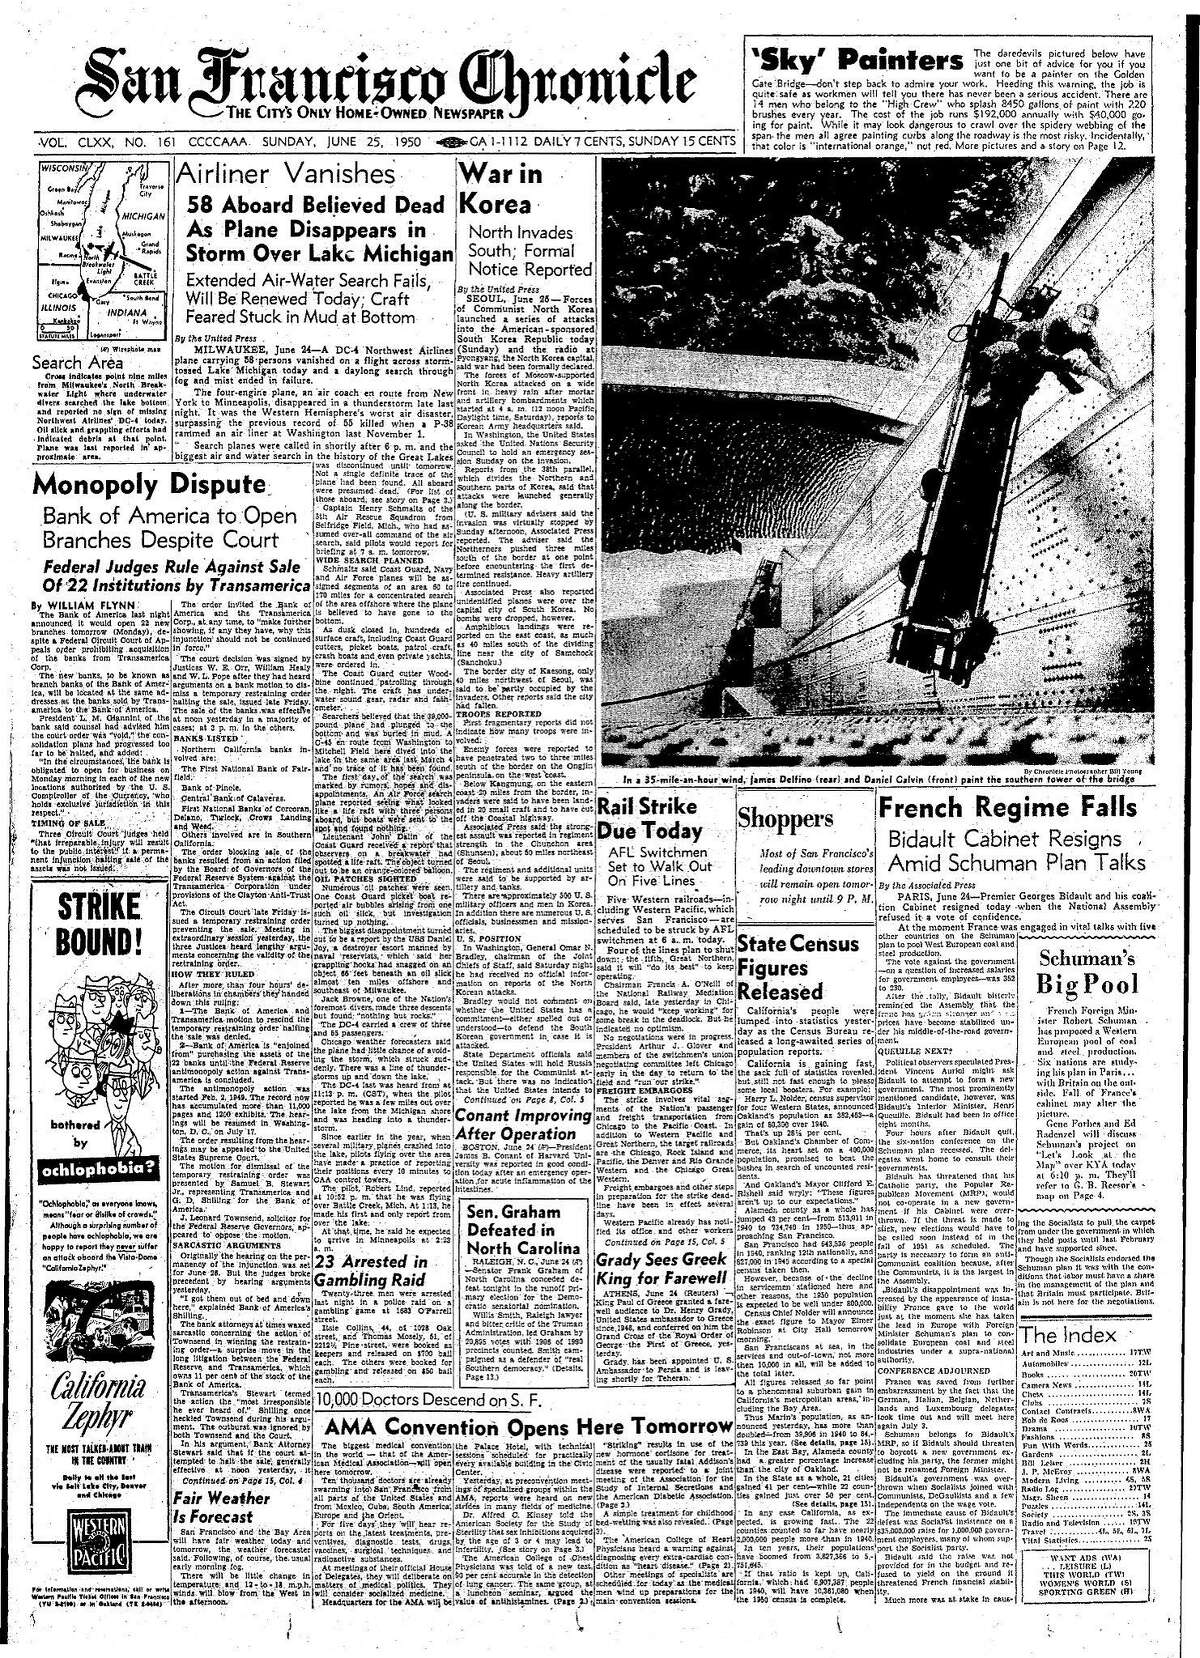 Historic Chronicle Front Page June 25, 1950 front page Painters high atop the Golden Gate Bridge Chron365, Chroncover